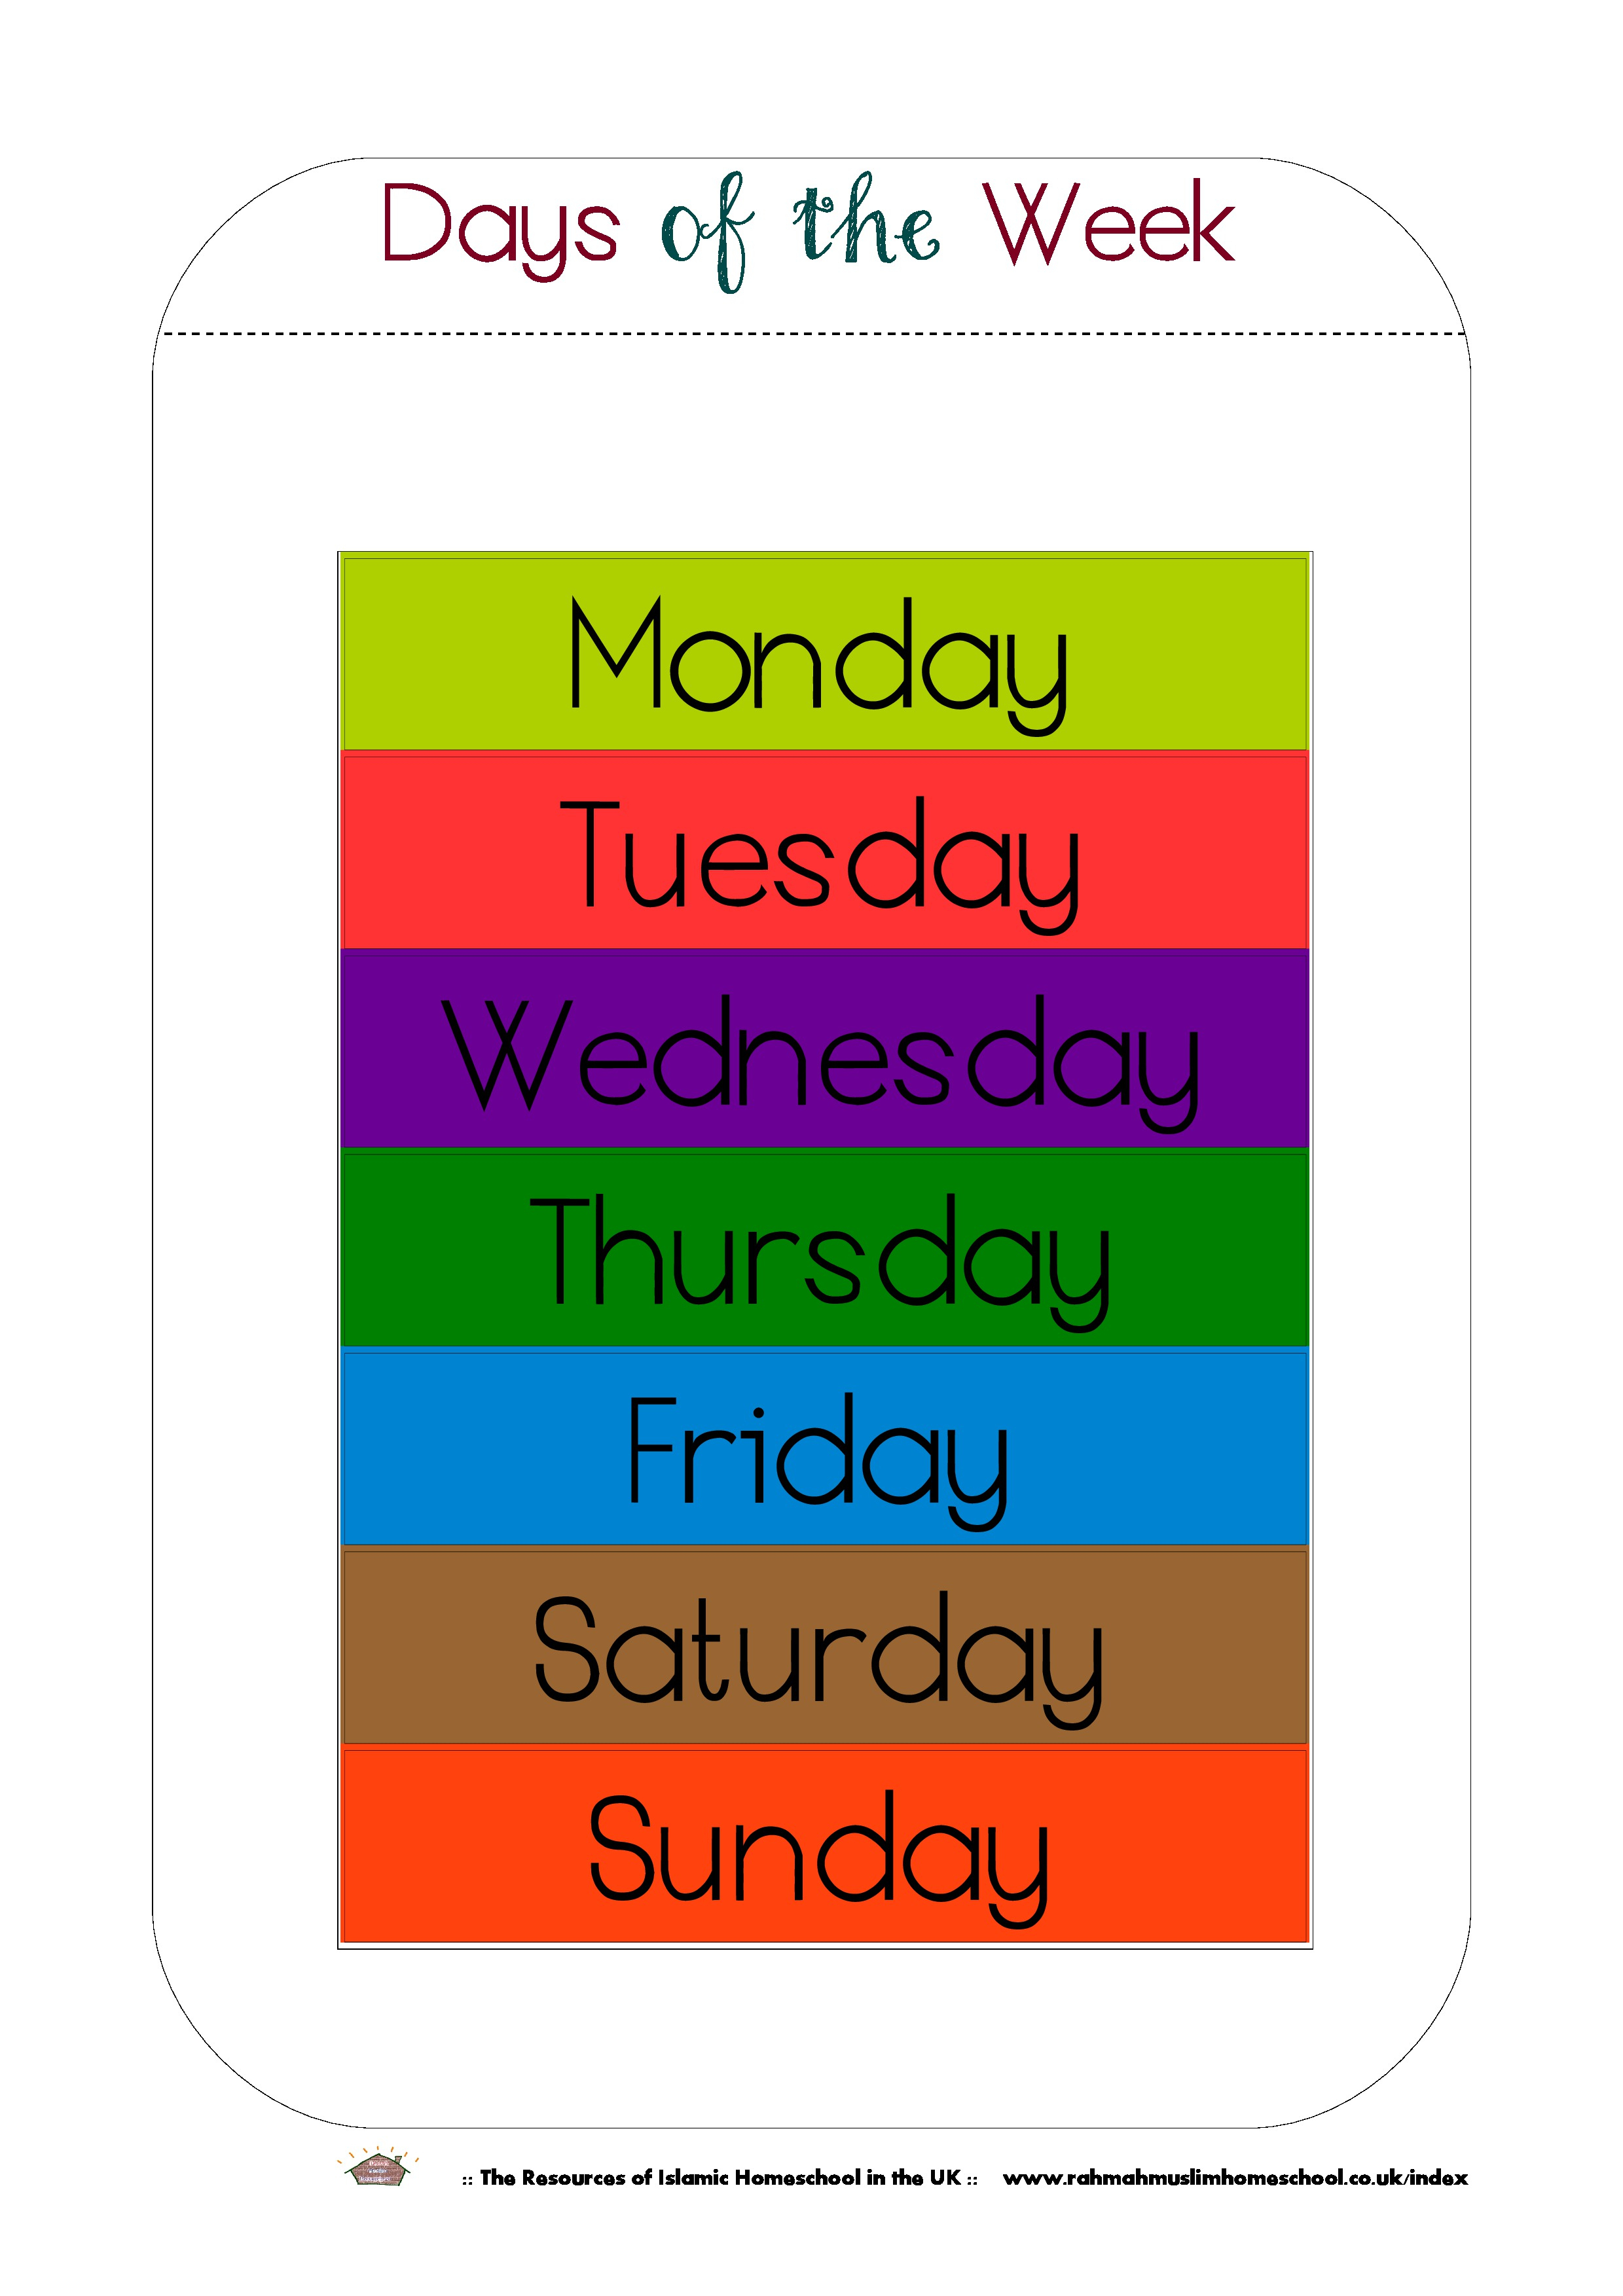 Free Printable Days Of The Week Workbook And Poster | The Resources - Free Printable Days Of The Week Cards